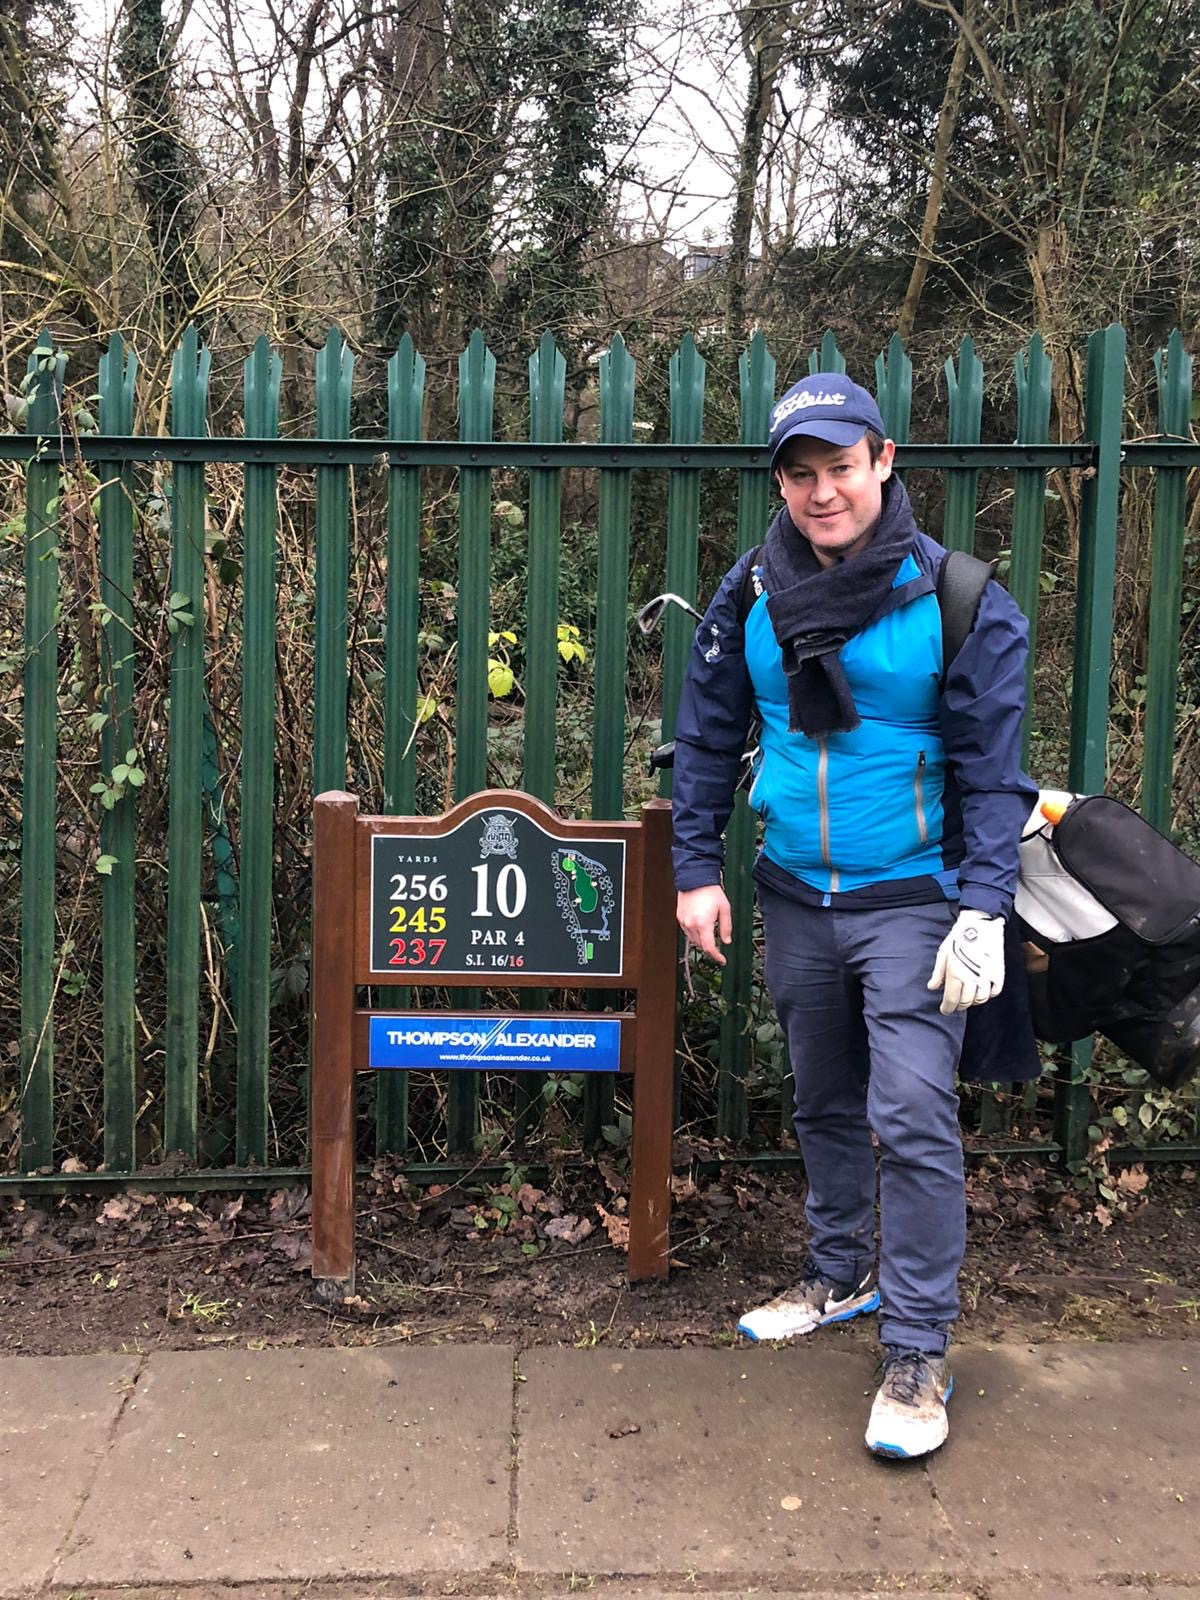 A photograph of Jamie at the 10th hole sign at Finchley Golf club, which is sponsored by Thompson Alexander. Green fence and trees in the background. Jamie is smiling and carrying his golf bag.